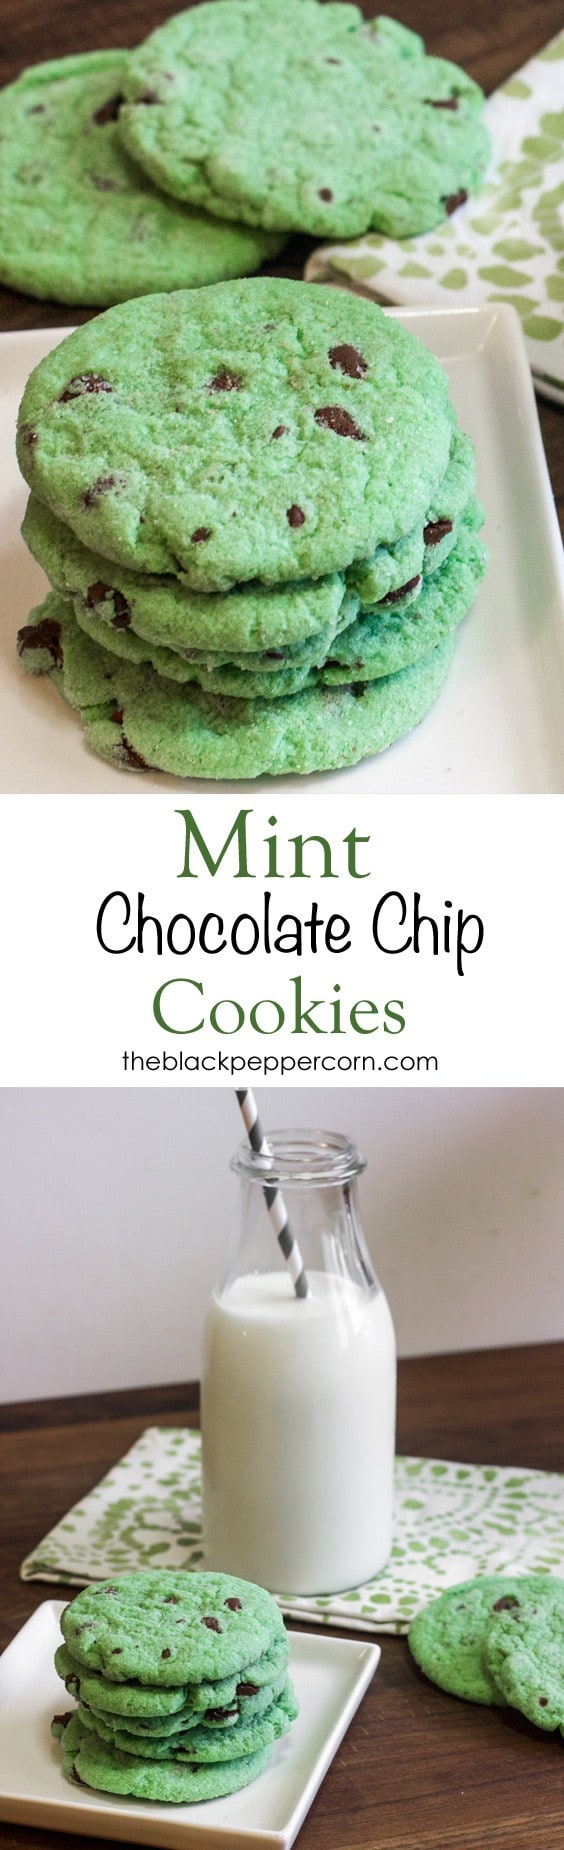 Mint Chocolate Chip Cookies_edited-1